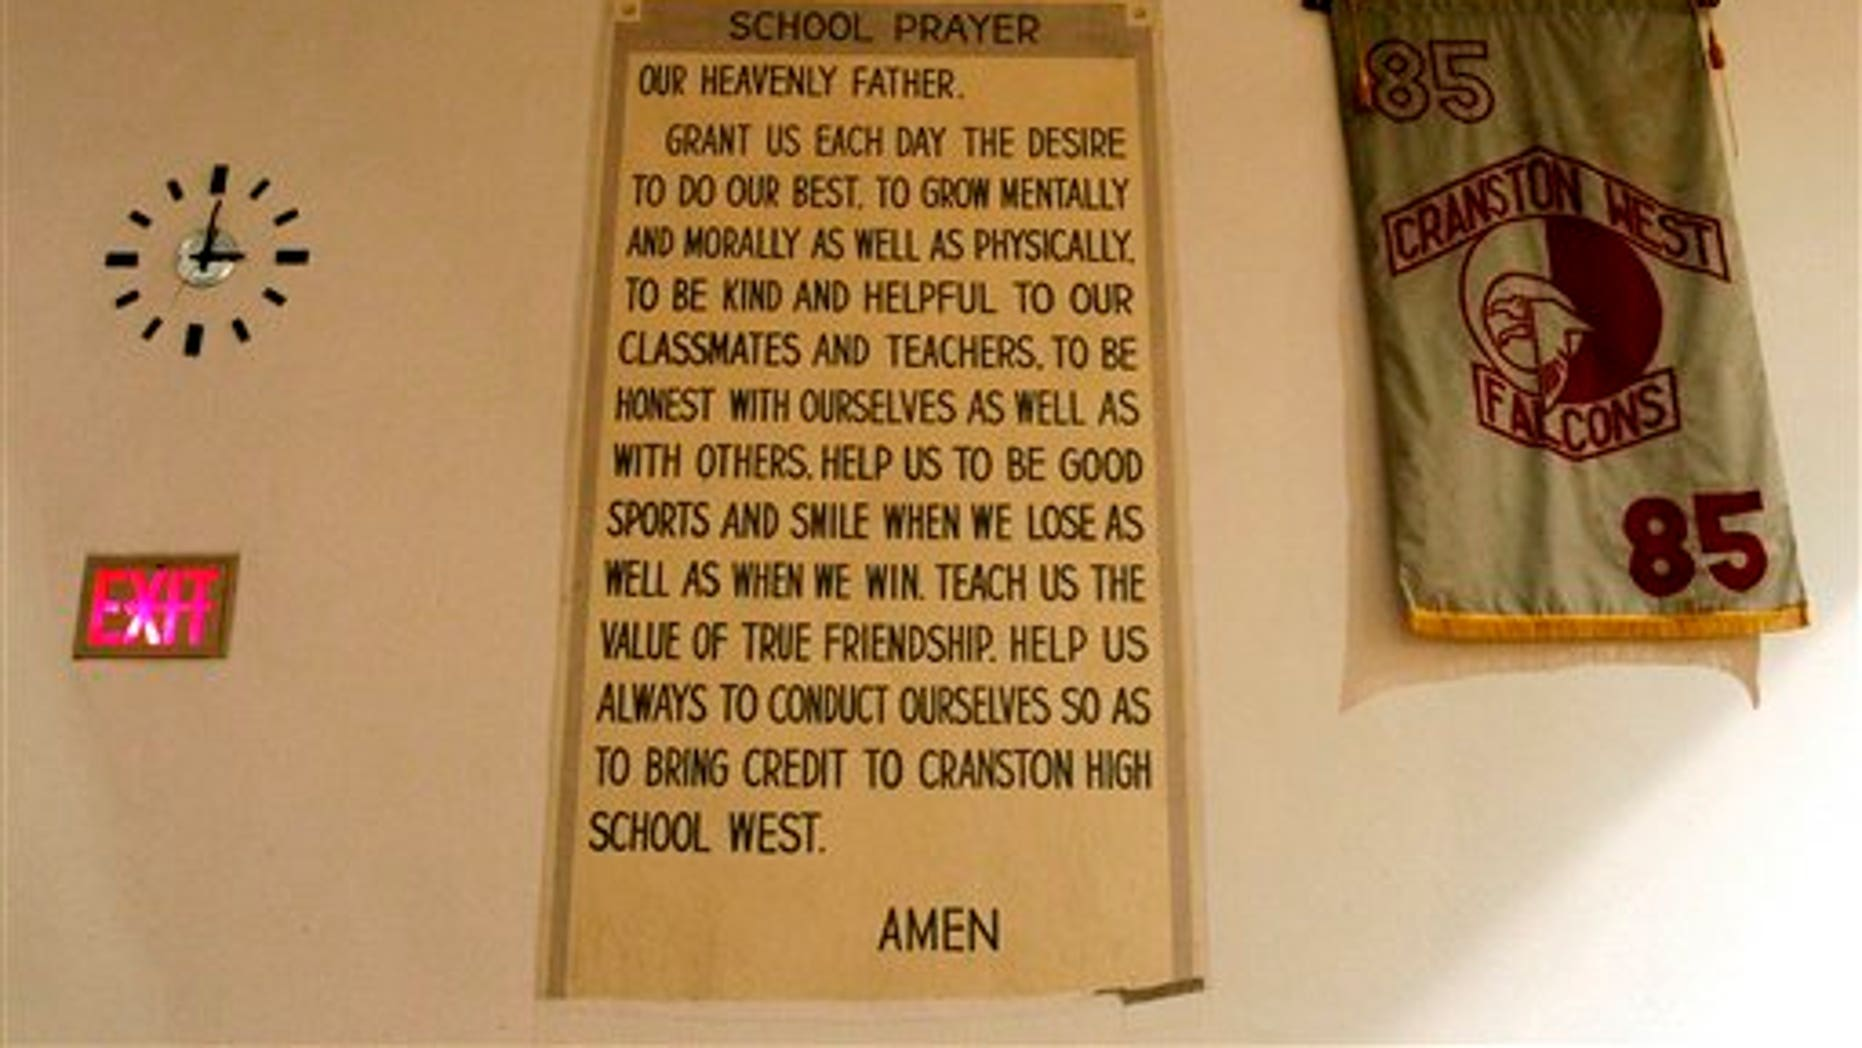 October 13: A prayer banner is seen on the wall of an auditorium at Cranston High School West, in Cranston, R.I.